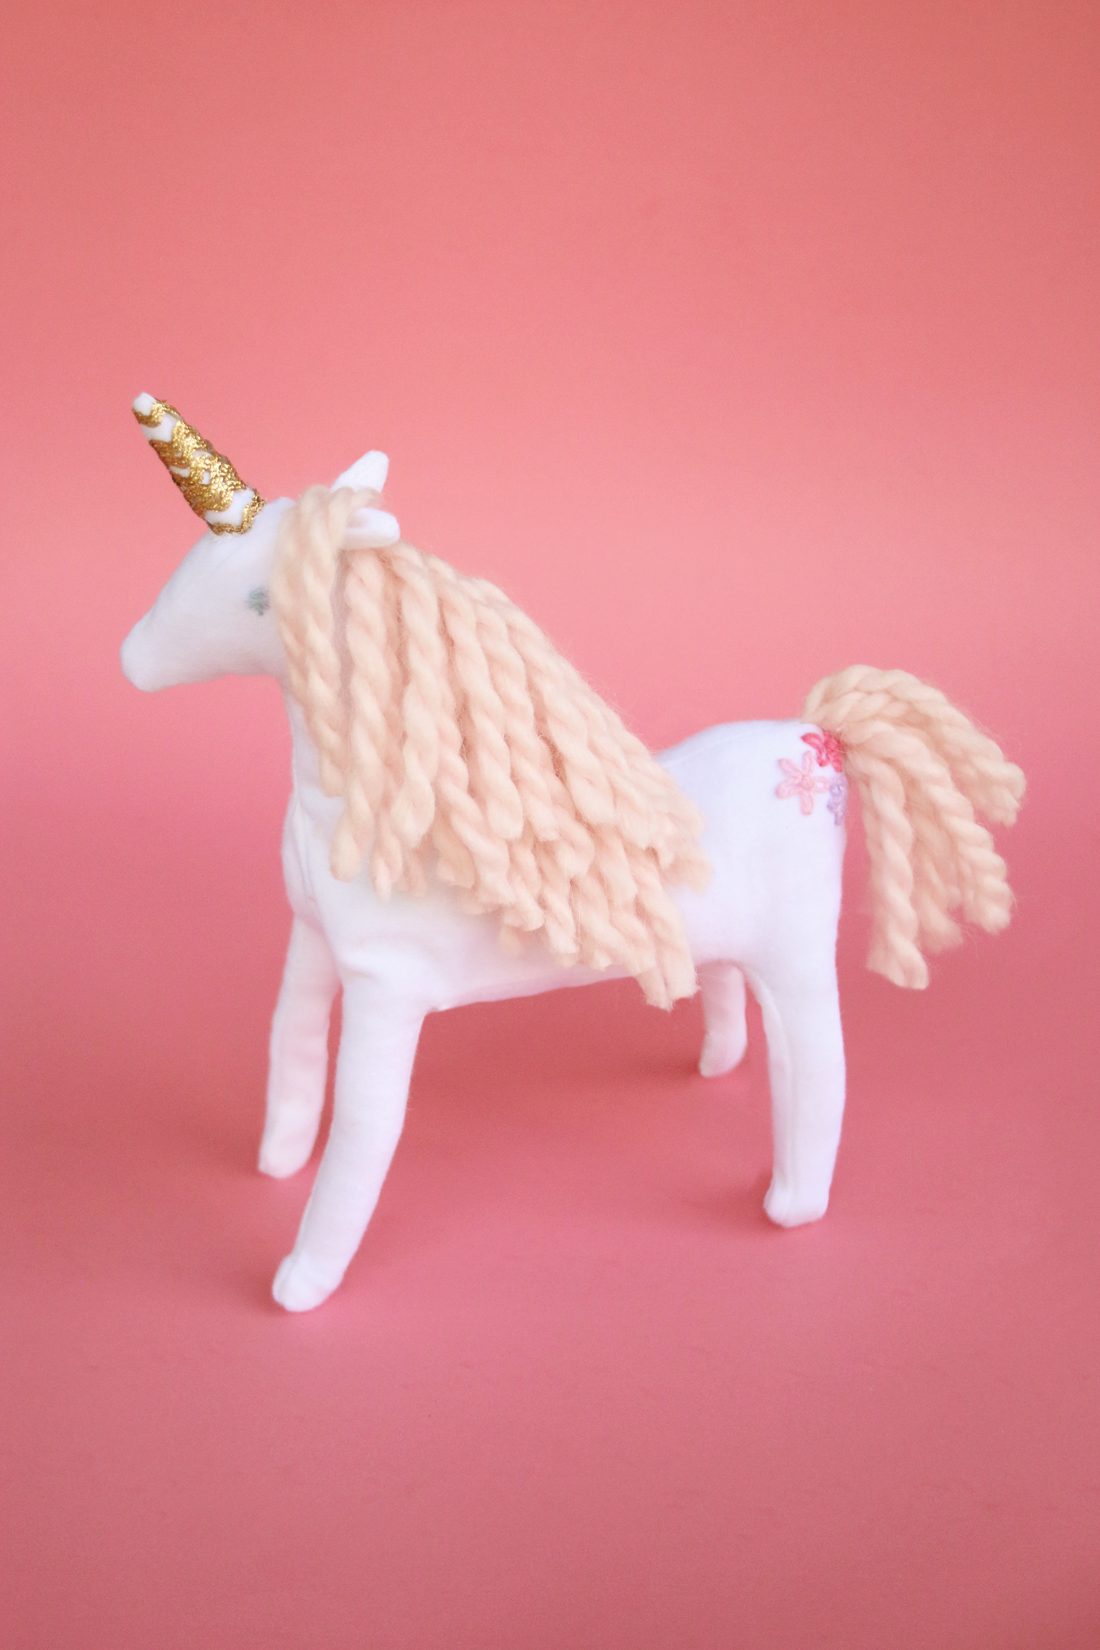 Magical Unicorn Stuffed Animal Pattern